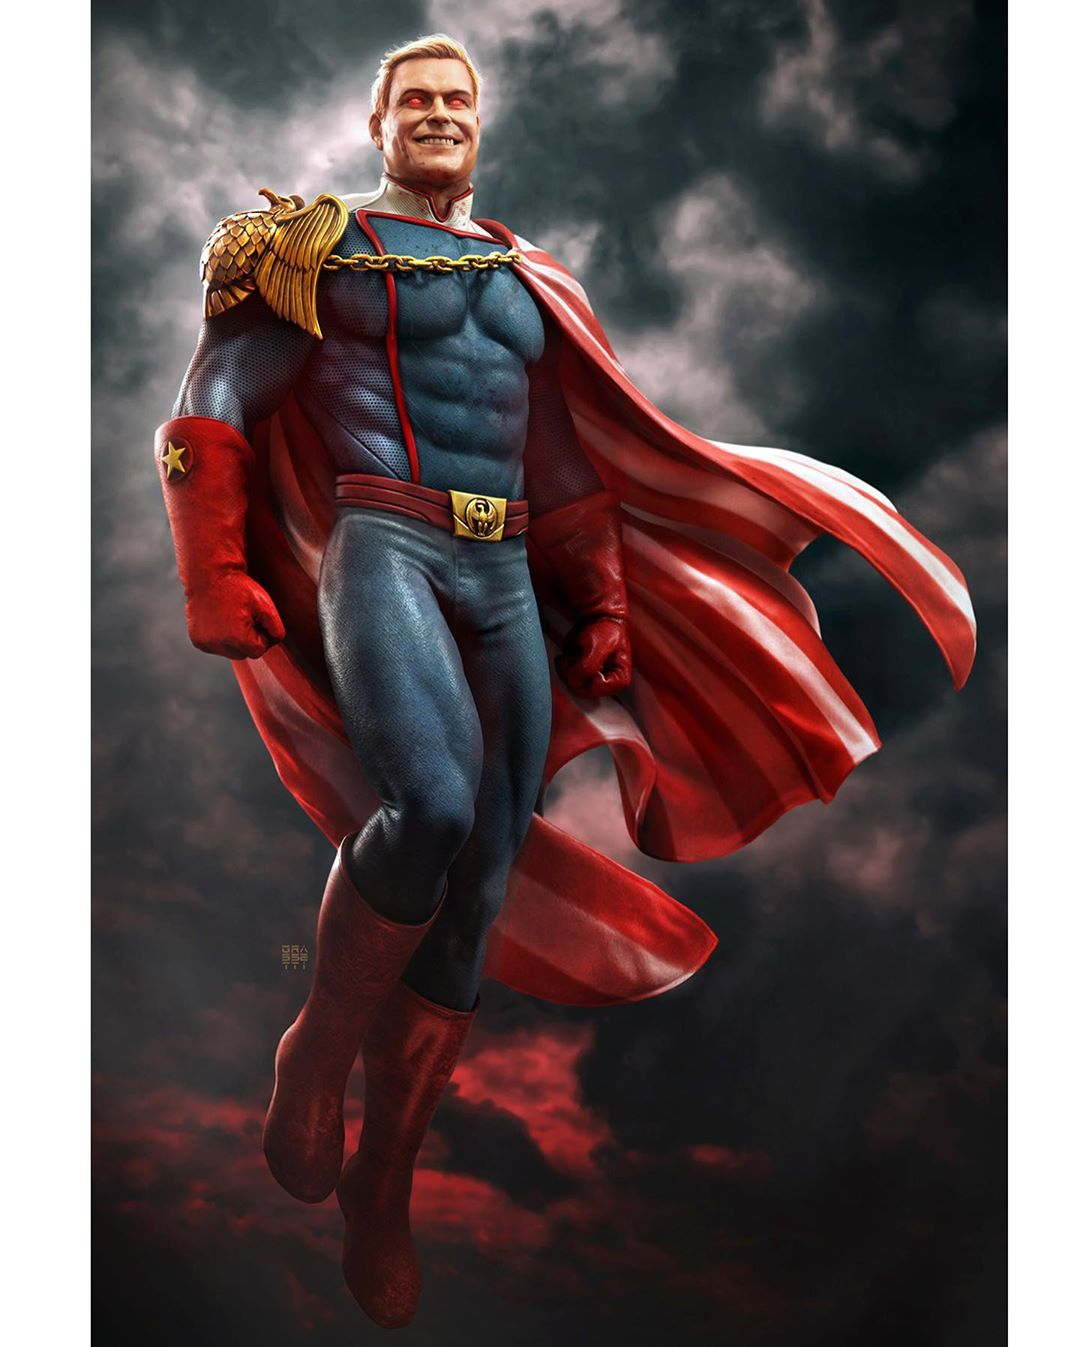 3d model character design superman